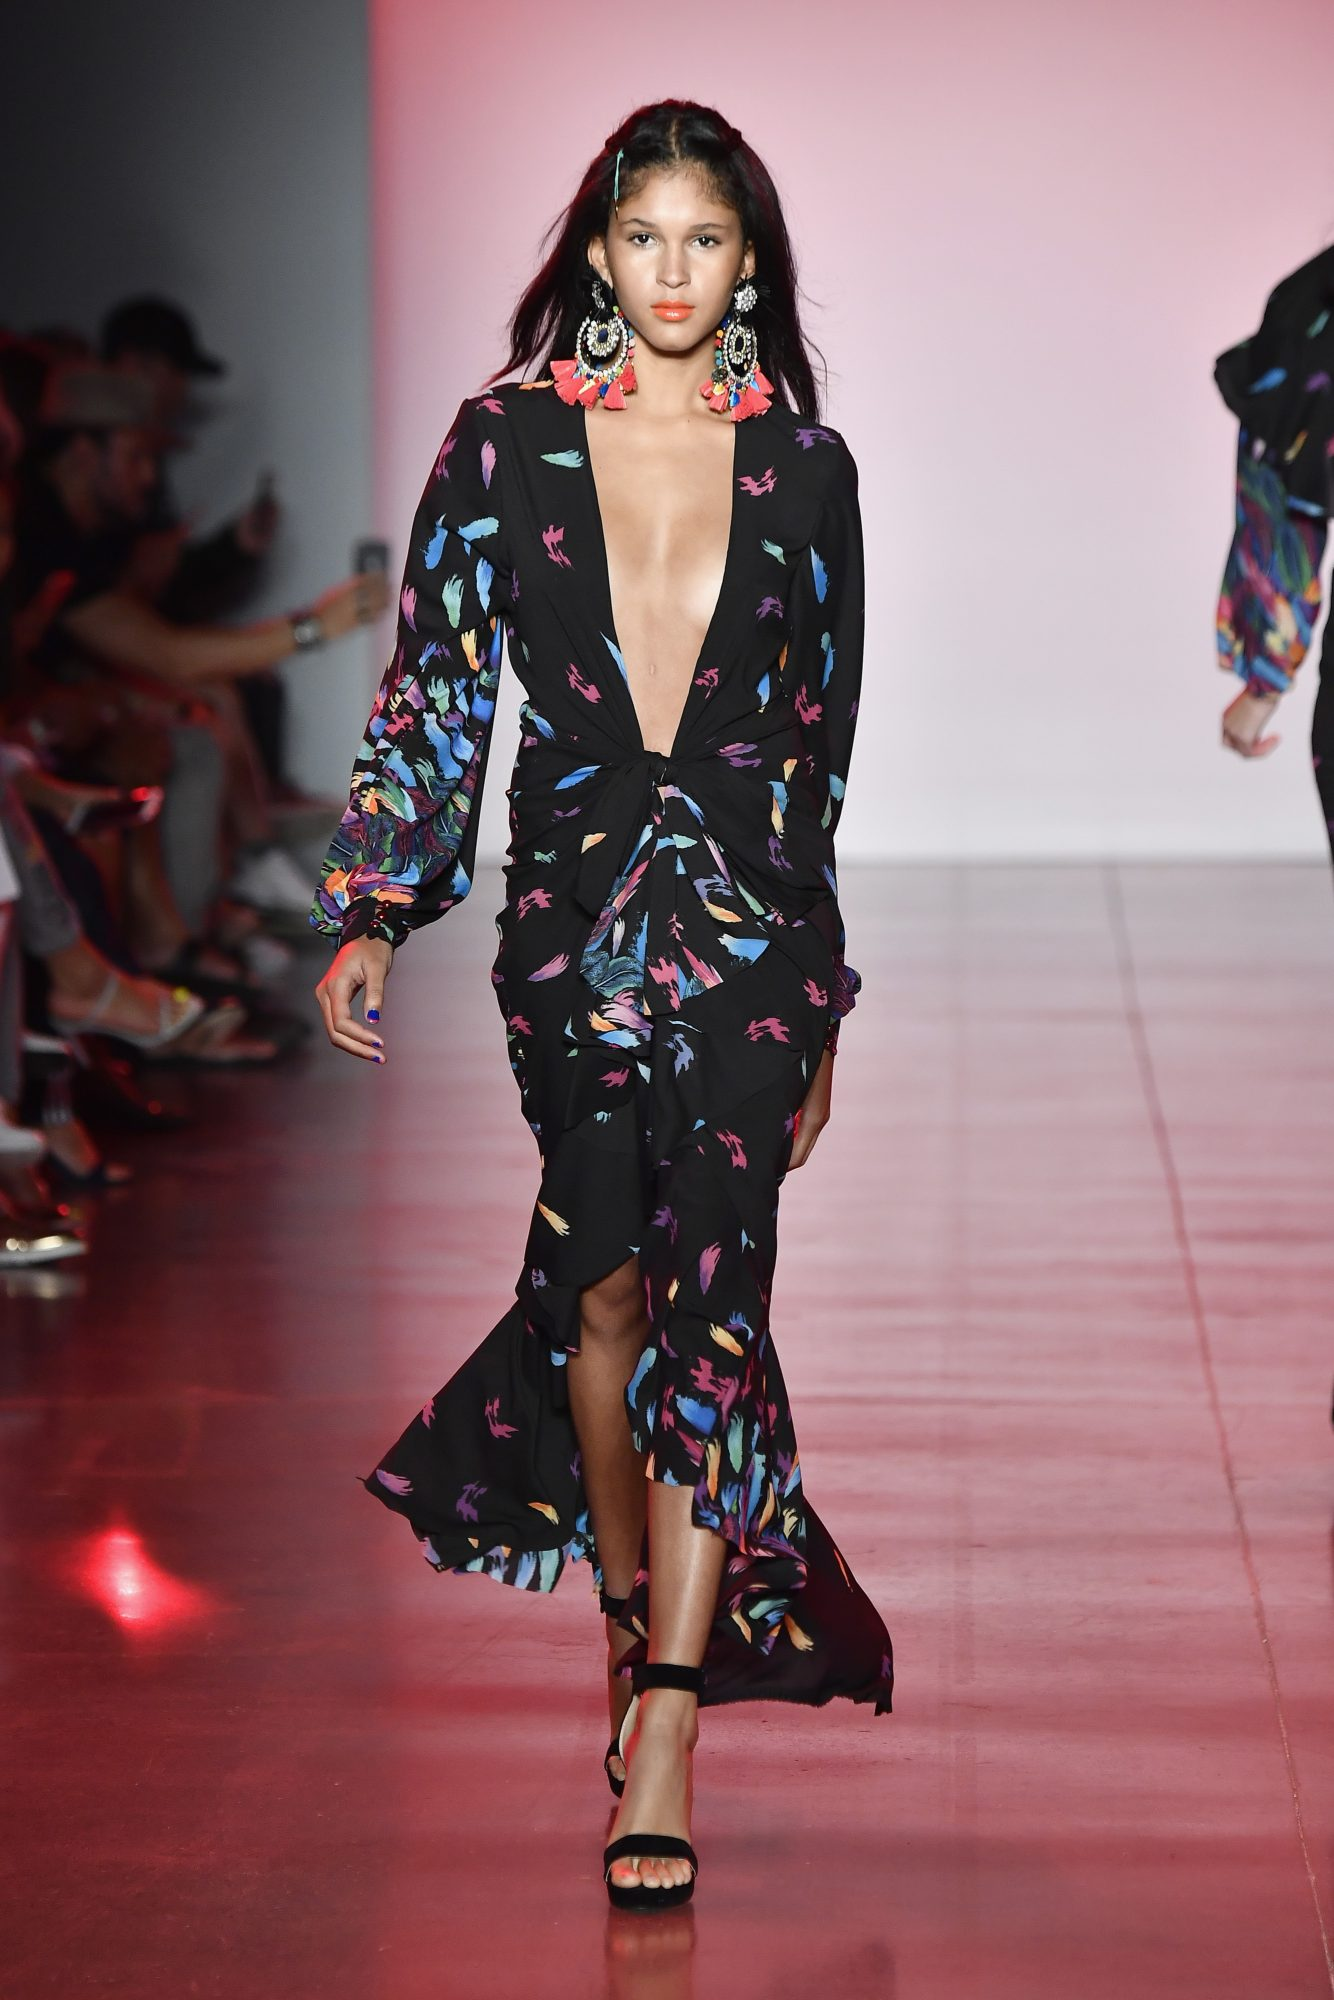 Michael Costello, New York Fashion Week, NYFW, pasarela, desfile